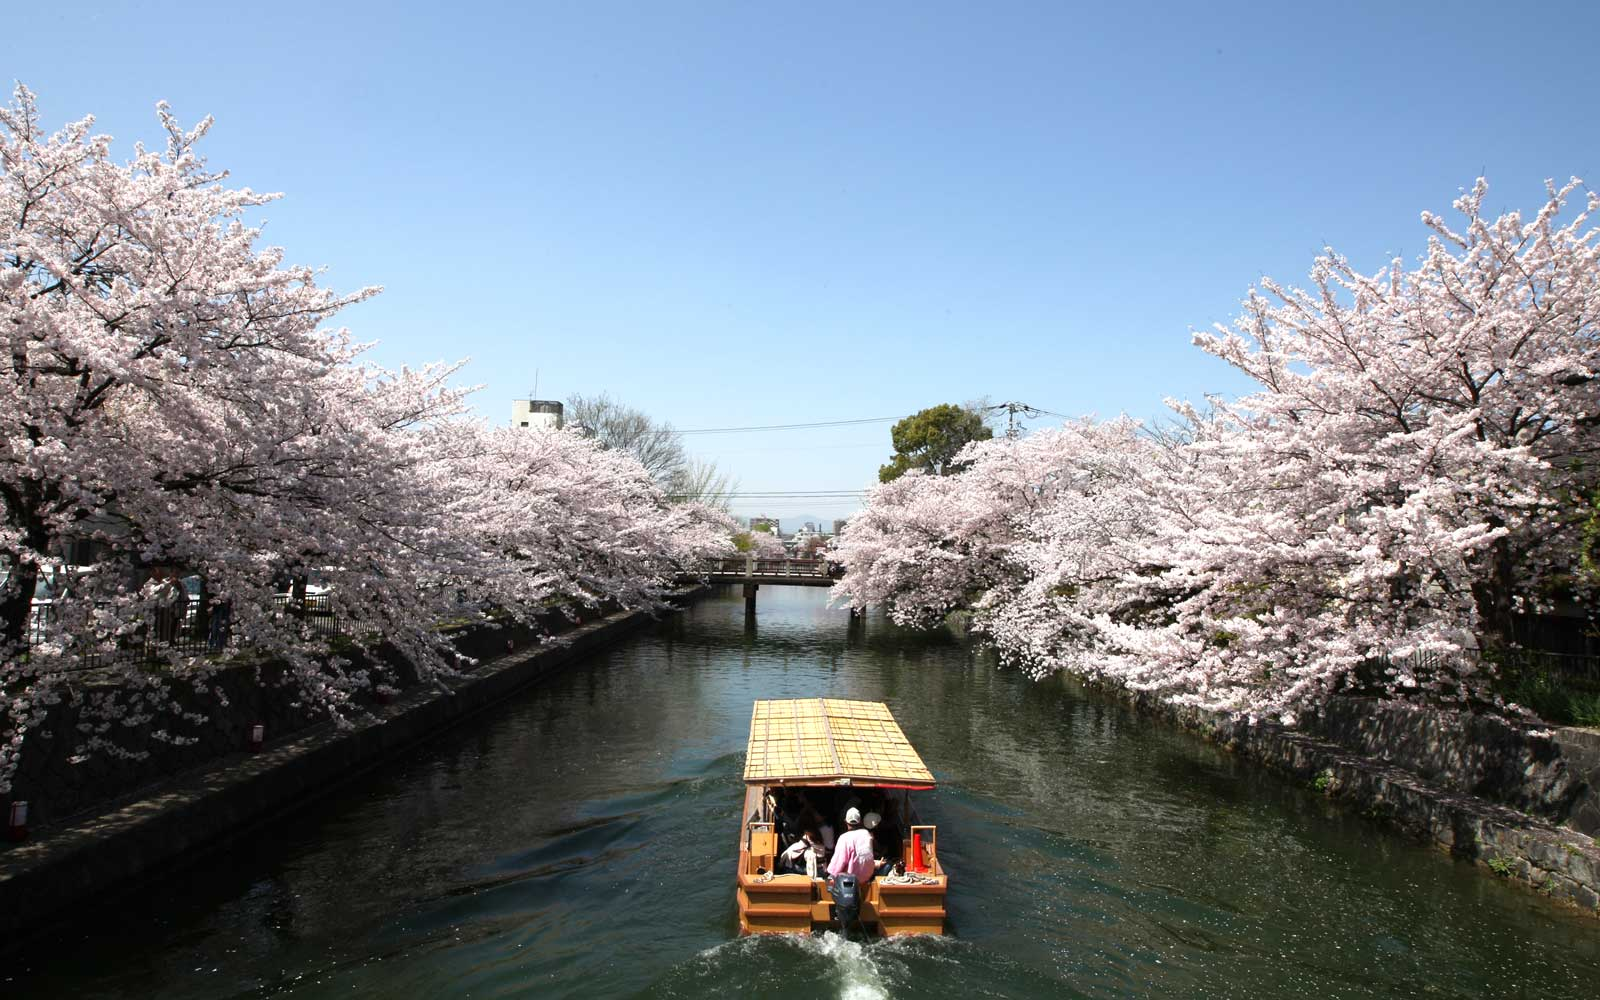 Ferry on the canal in Kyoto during cherry blossom season